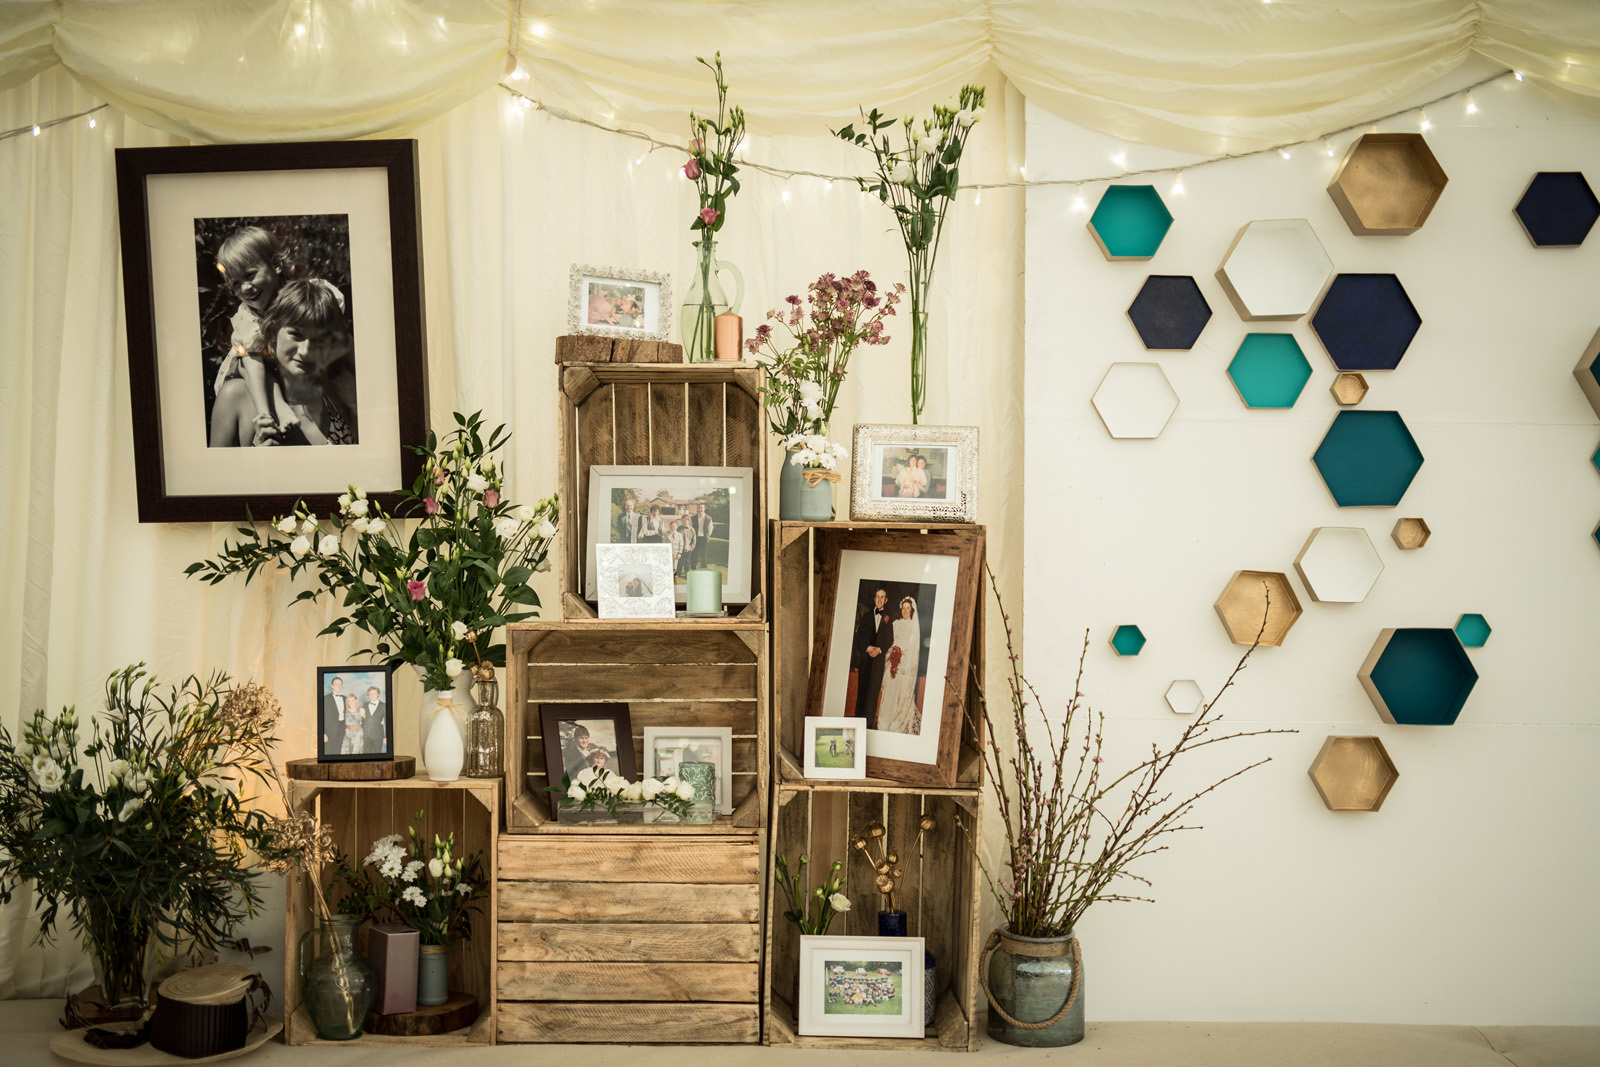 Pictures and Wedding decoration in Dorset Marquee